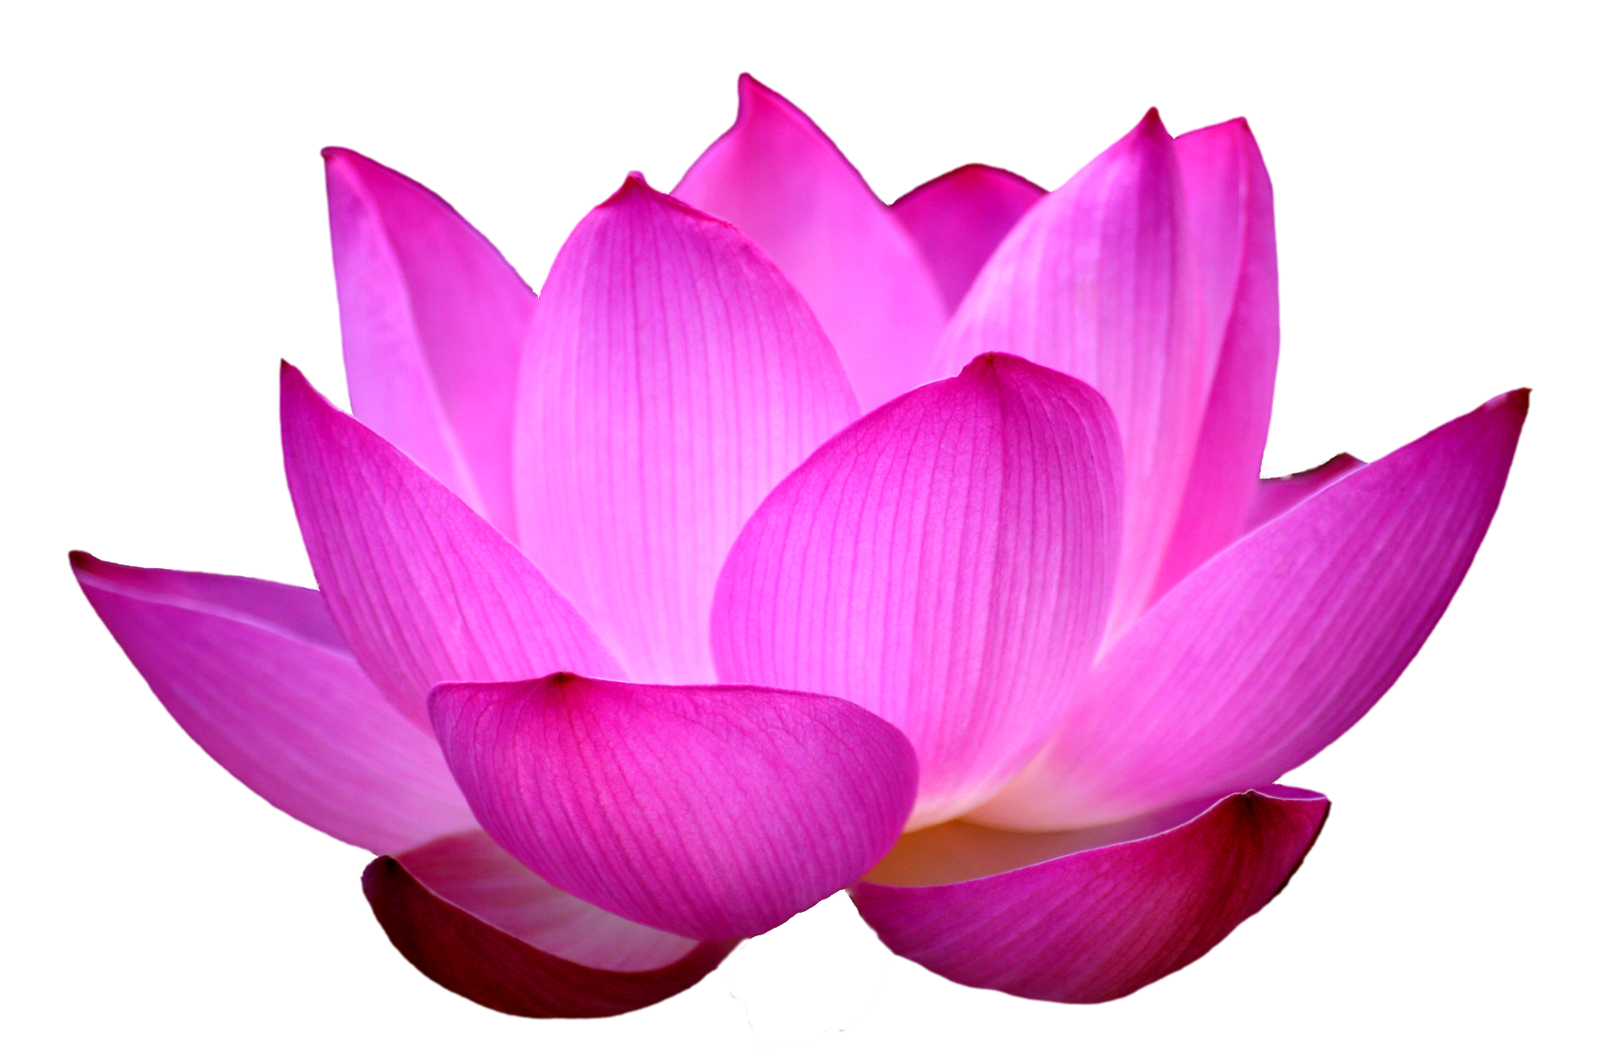 Lotus flower png. Images free download blue